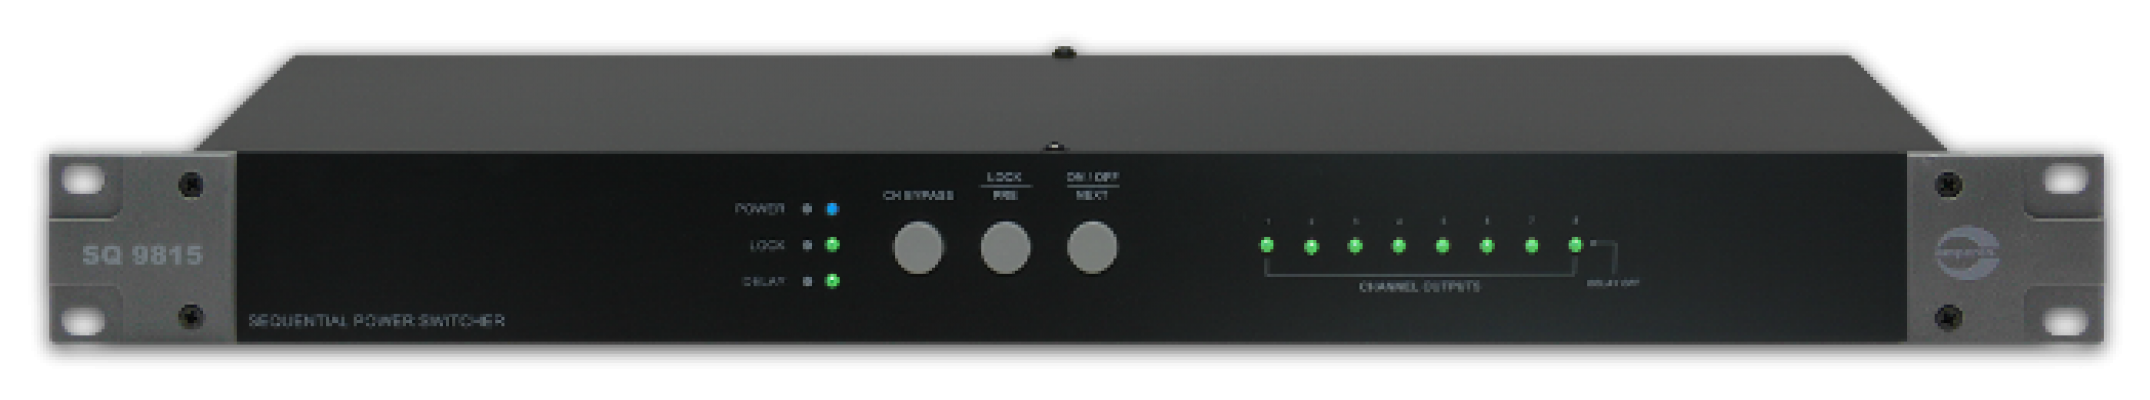 SQ9815 [ SEQUENTIAL POWER SWITCHER ]